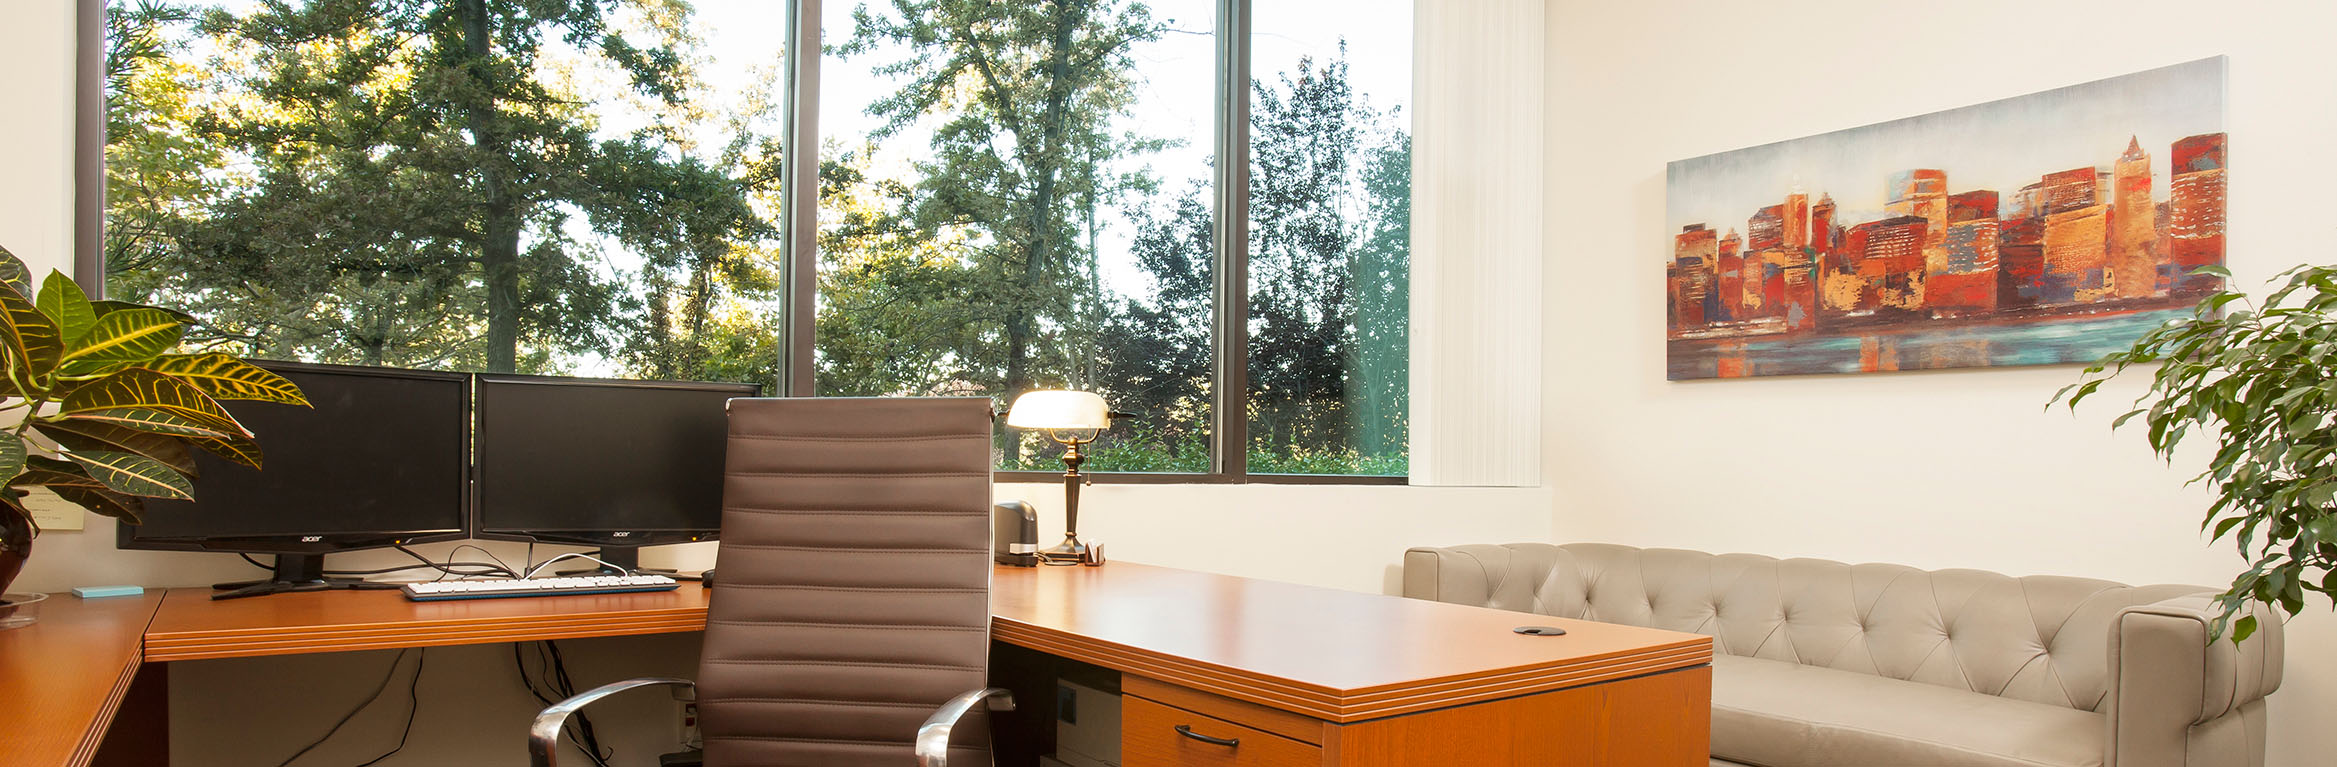 FLEXIBLE & SCALABLE OFFICE SPACE in Sacramento, CA